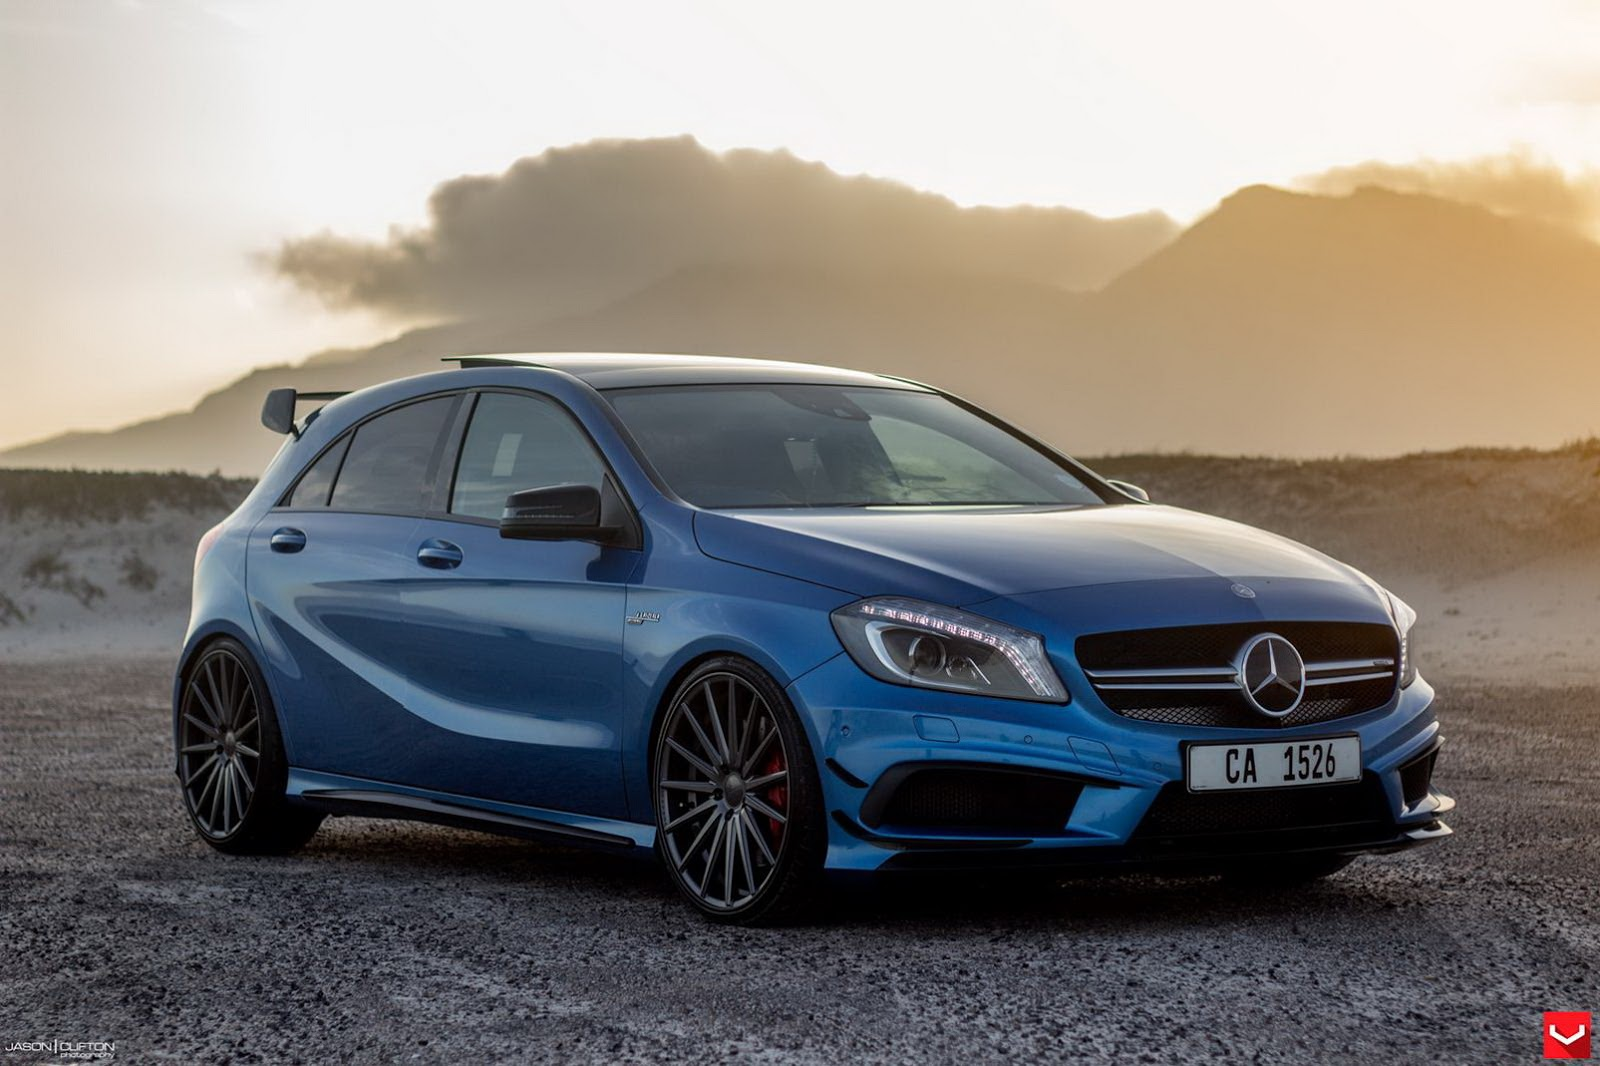 stunning blue mercedes benz a45 amg poses gtspirit. Black Bedroom Furniture Sets. Home Design Ideas